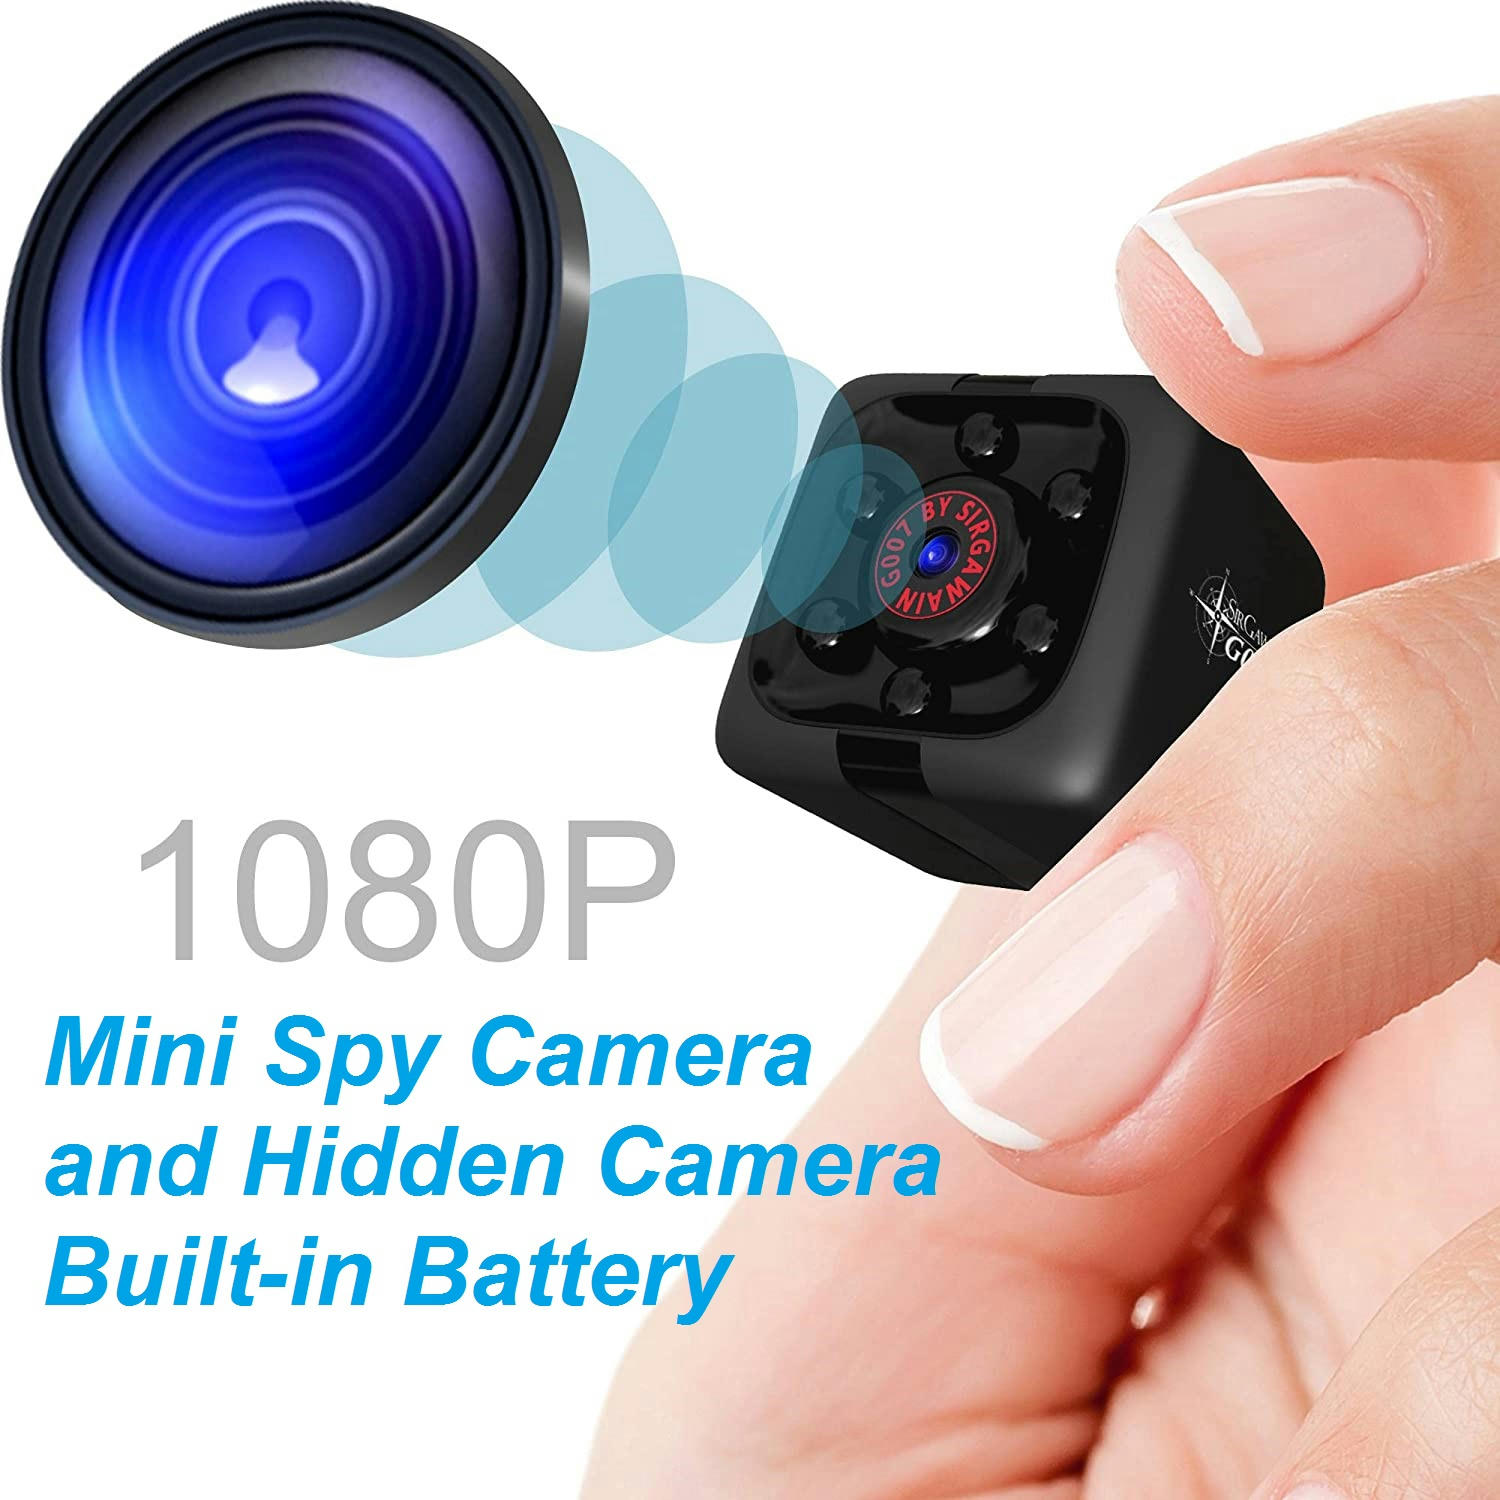 Mini Spy Camera-Hidden Camera Built-in Battery-Night Vision -online store shopping-electronics store near my location-online ordering